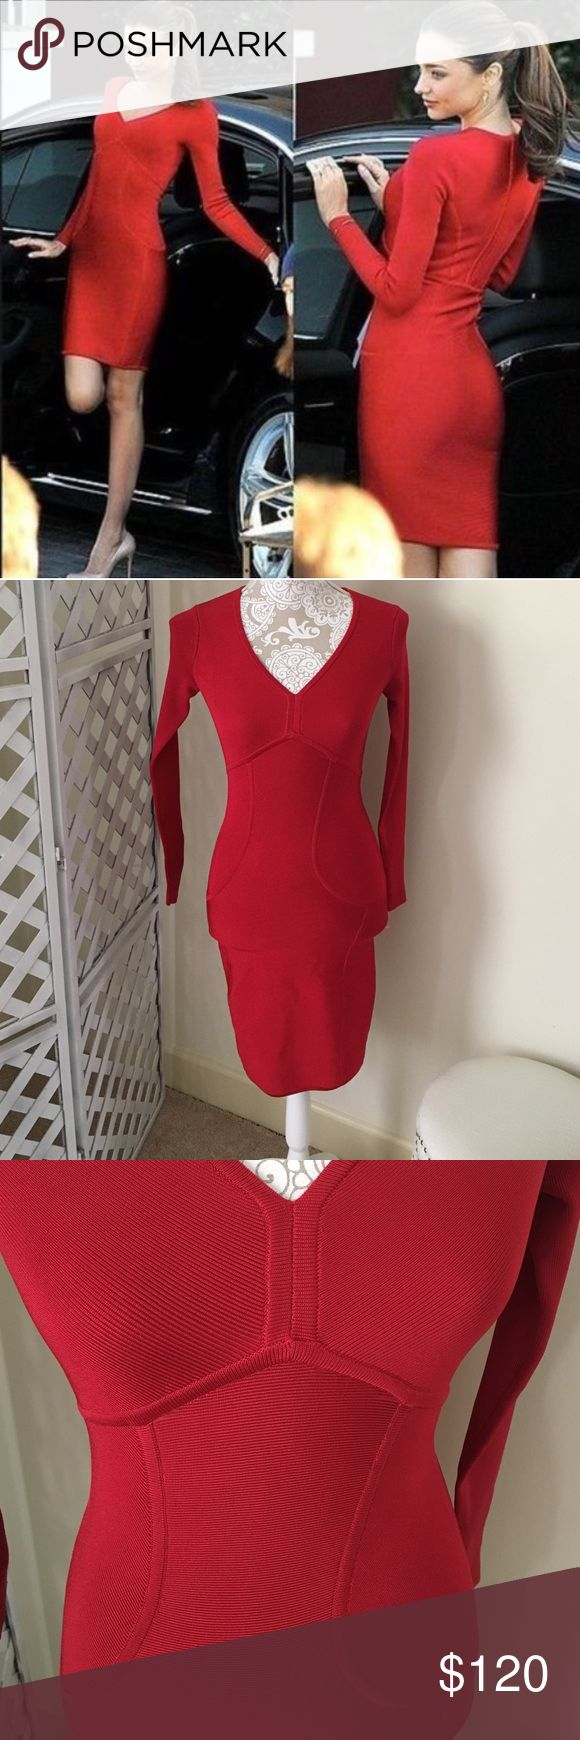 NWOT Ted Baker Red Bodycon Dress Ted Baker fitted red dress as seen on several celebrities.  NWOT ( neck tag  is cut because it can not be returned.)Dress has back zipper that stops at the waist. 74% viscose 22% nylon 4% elastane. Dress is a 0 in Ted baker sizing but a 2 in us sizing. Waist laying flat 11.5 inches length 34 inches no trades no price comments no comments from non serious buyers no lowballing ✔️I ship next day so please accept your package after receiving Ted Baker Dresses